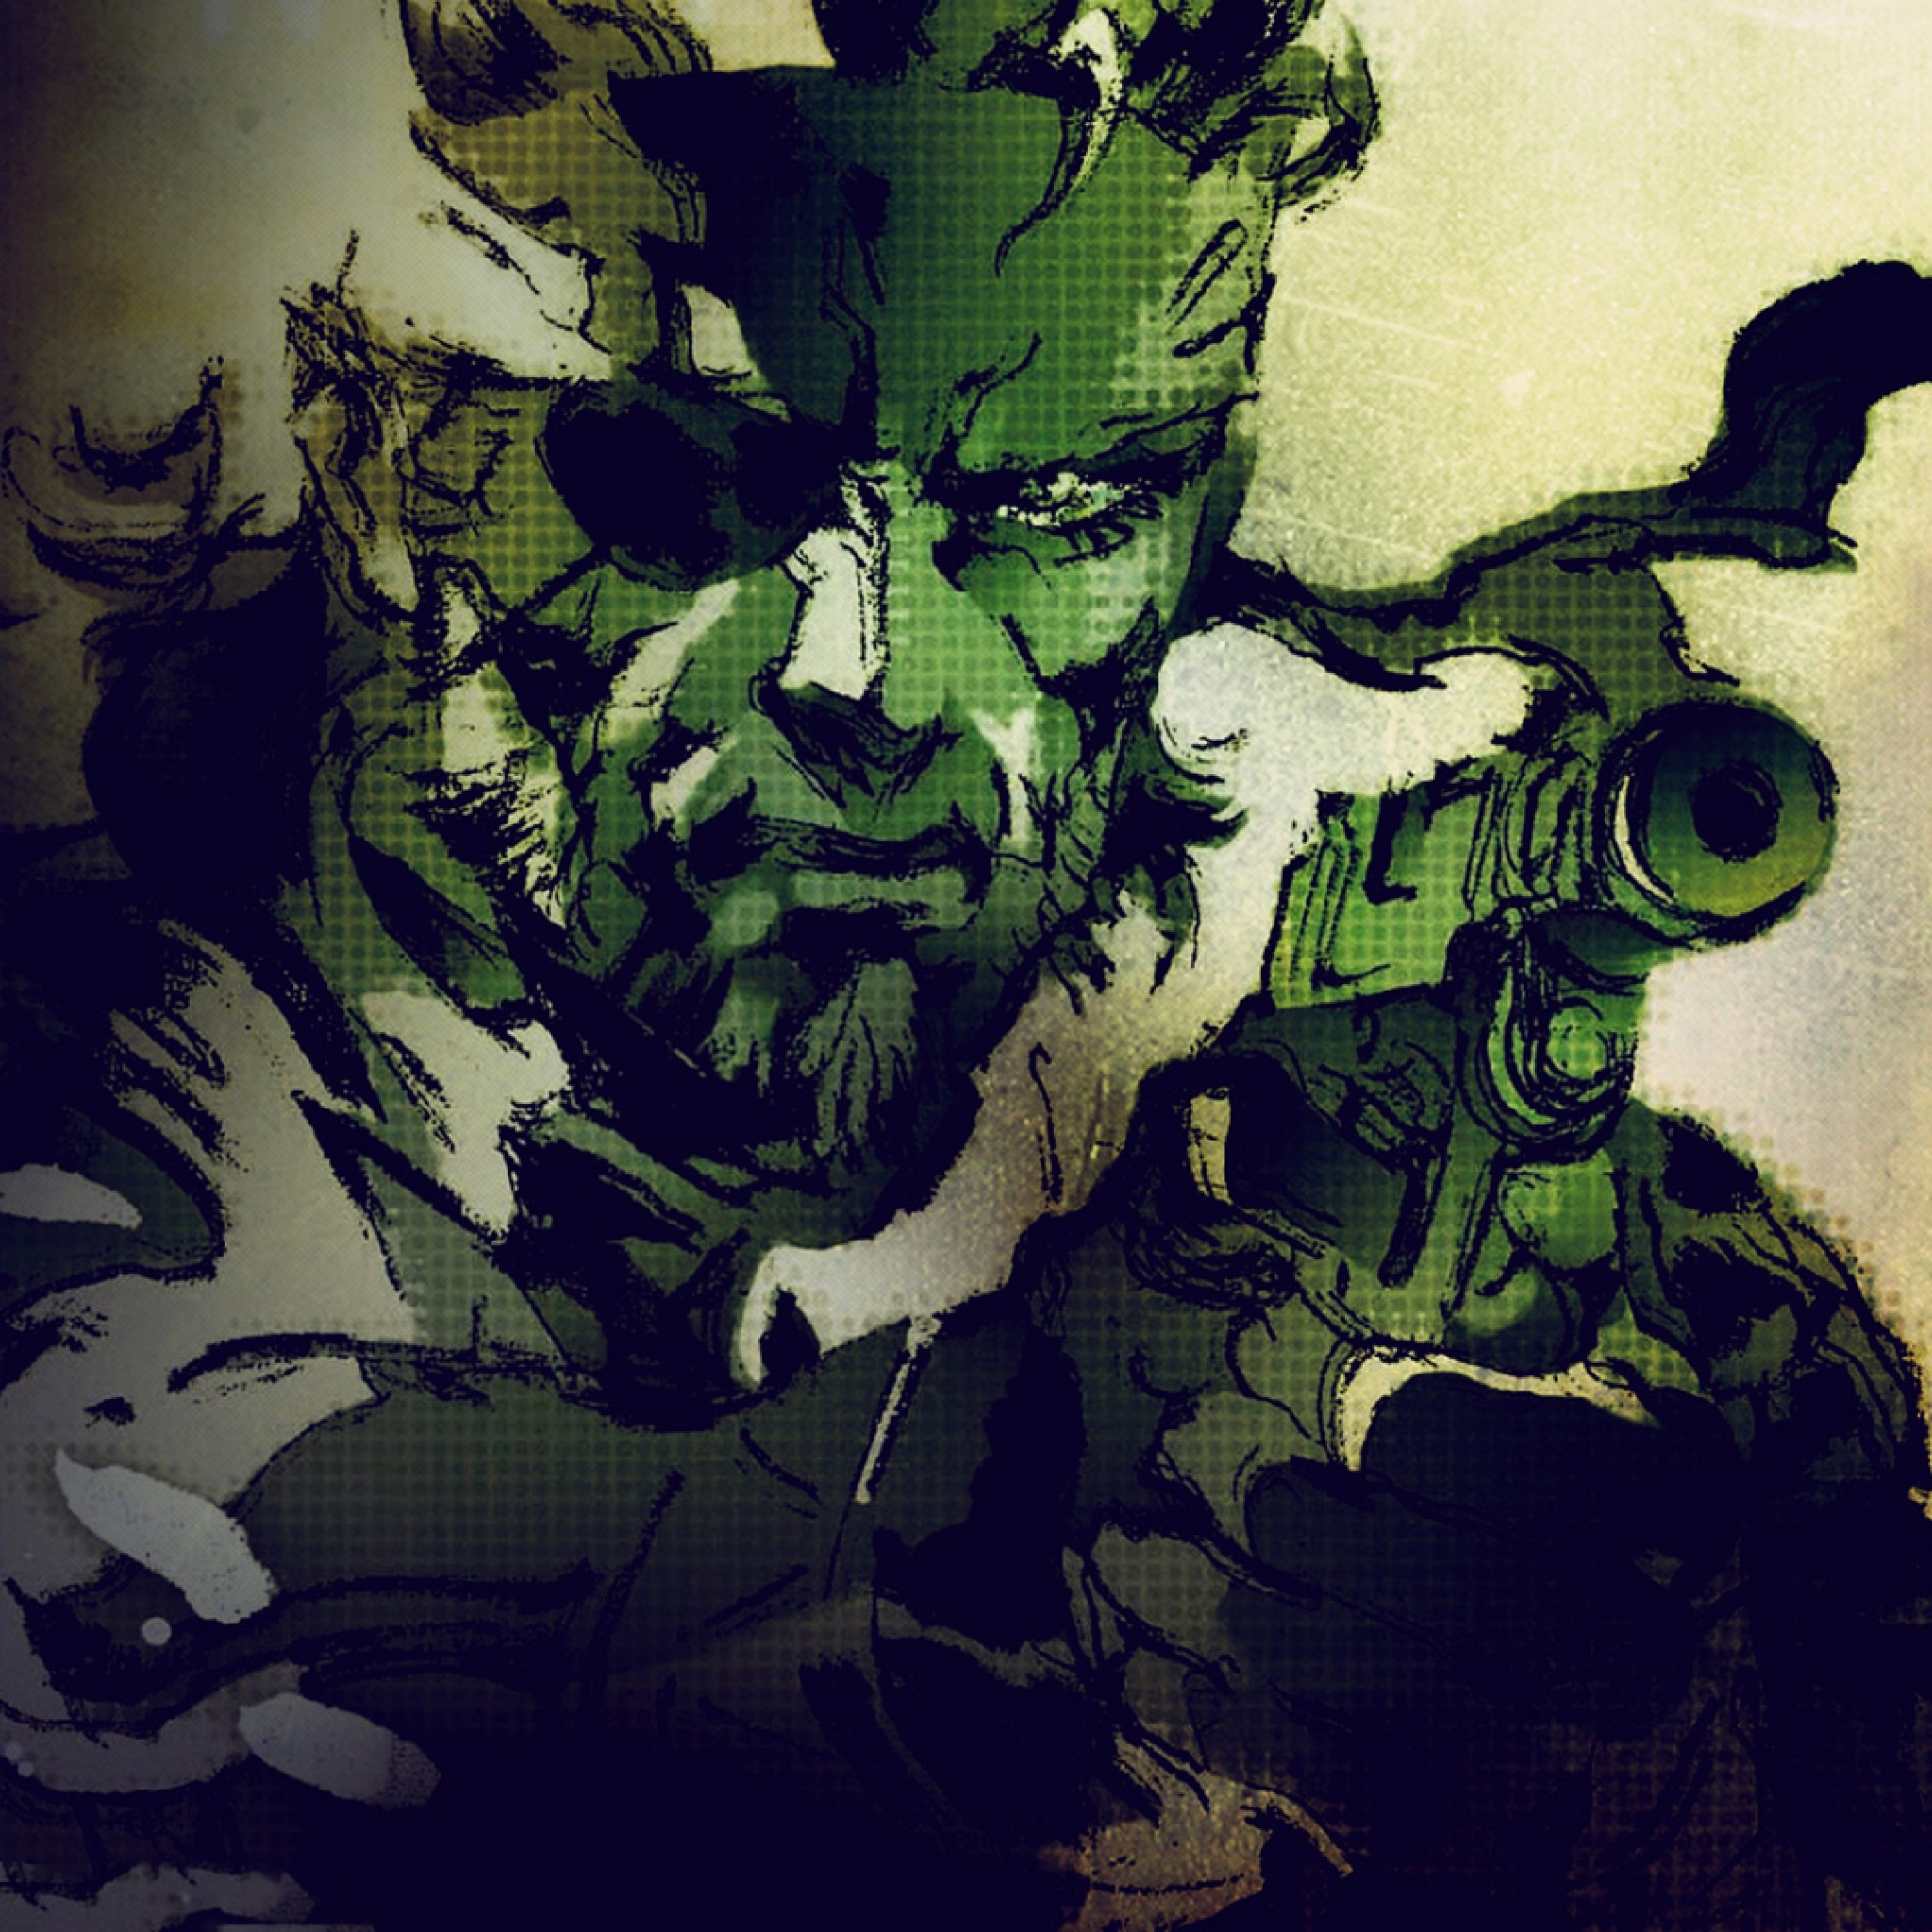 Wallpaper metal gear solid, stealth-action, sony playstation, pc